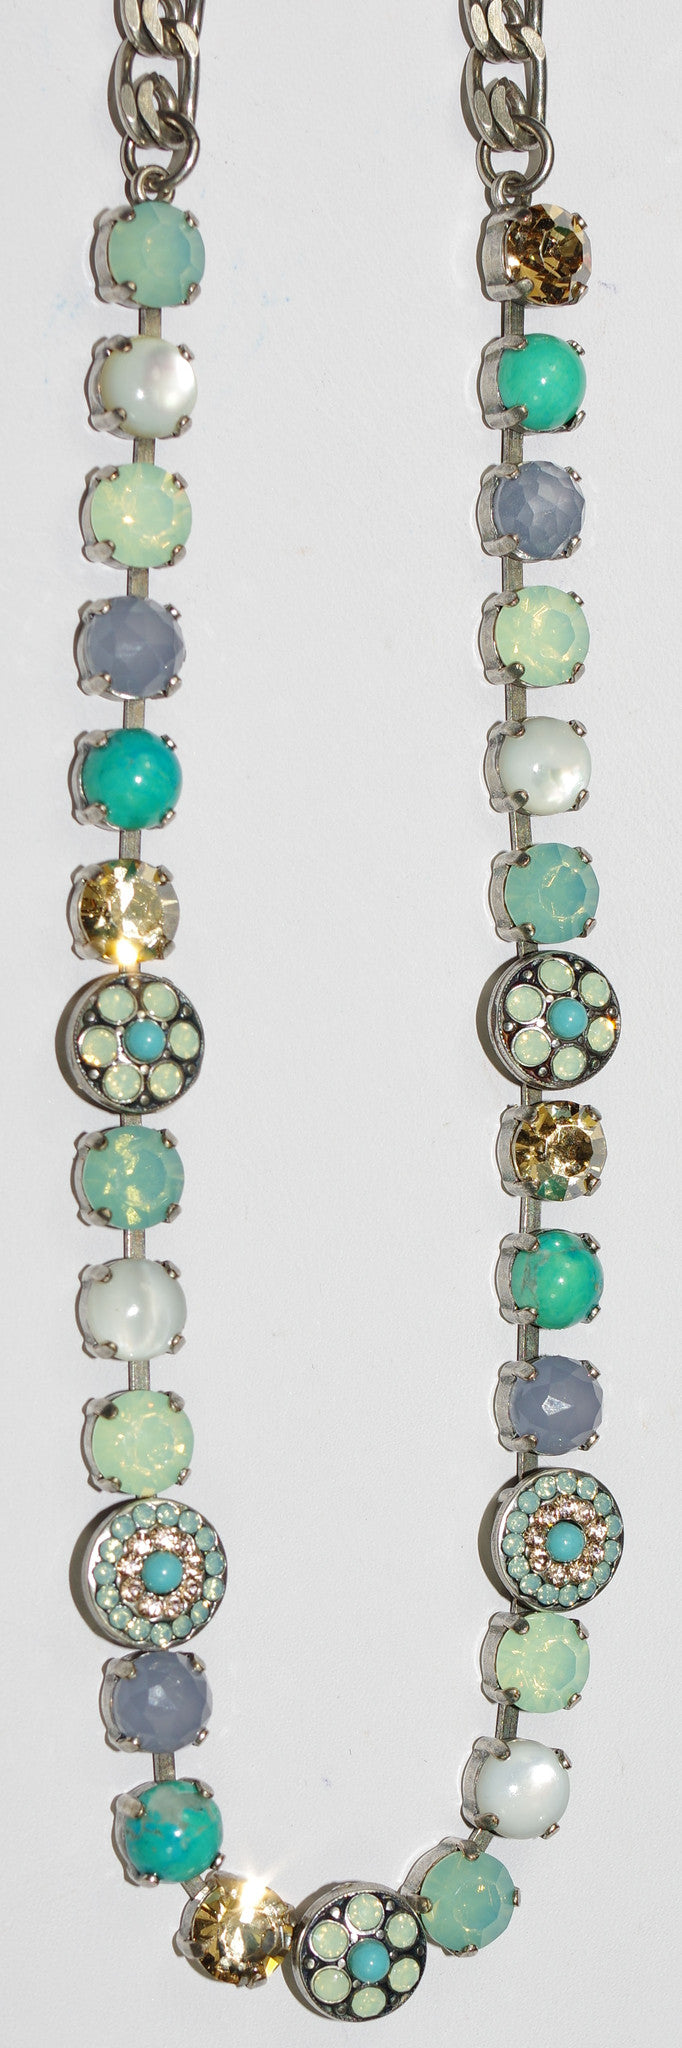 "MARIANA NECKLACE BOSPHEROUS: pacific opal, amber, white, turq stones in silver setting, 17"" adjustable chain"